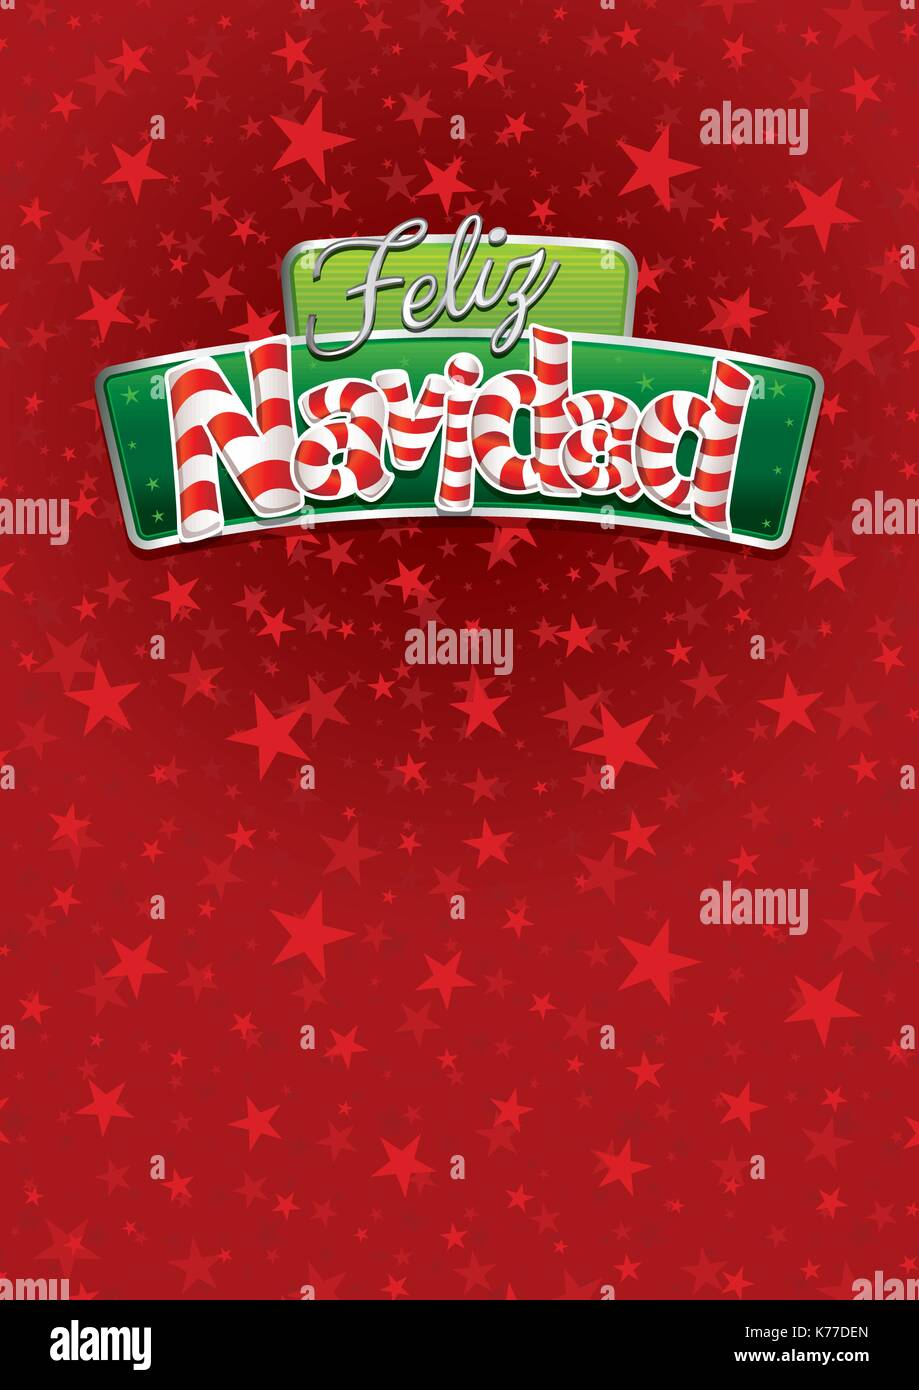 Feliz Navidad Merry Christmas In Spanish Language Red Cover Of